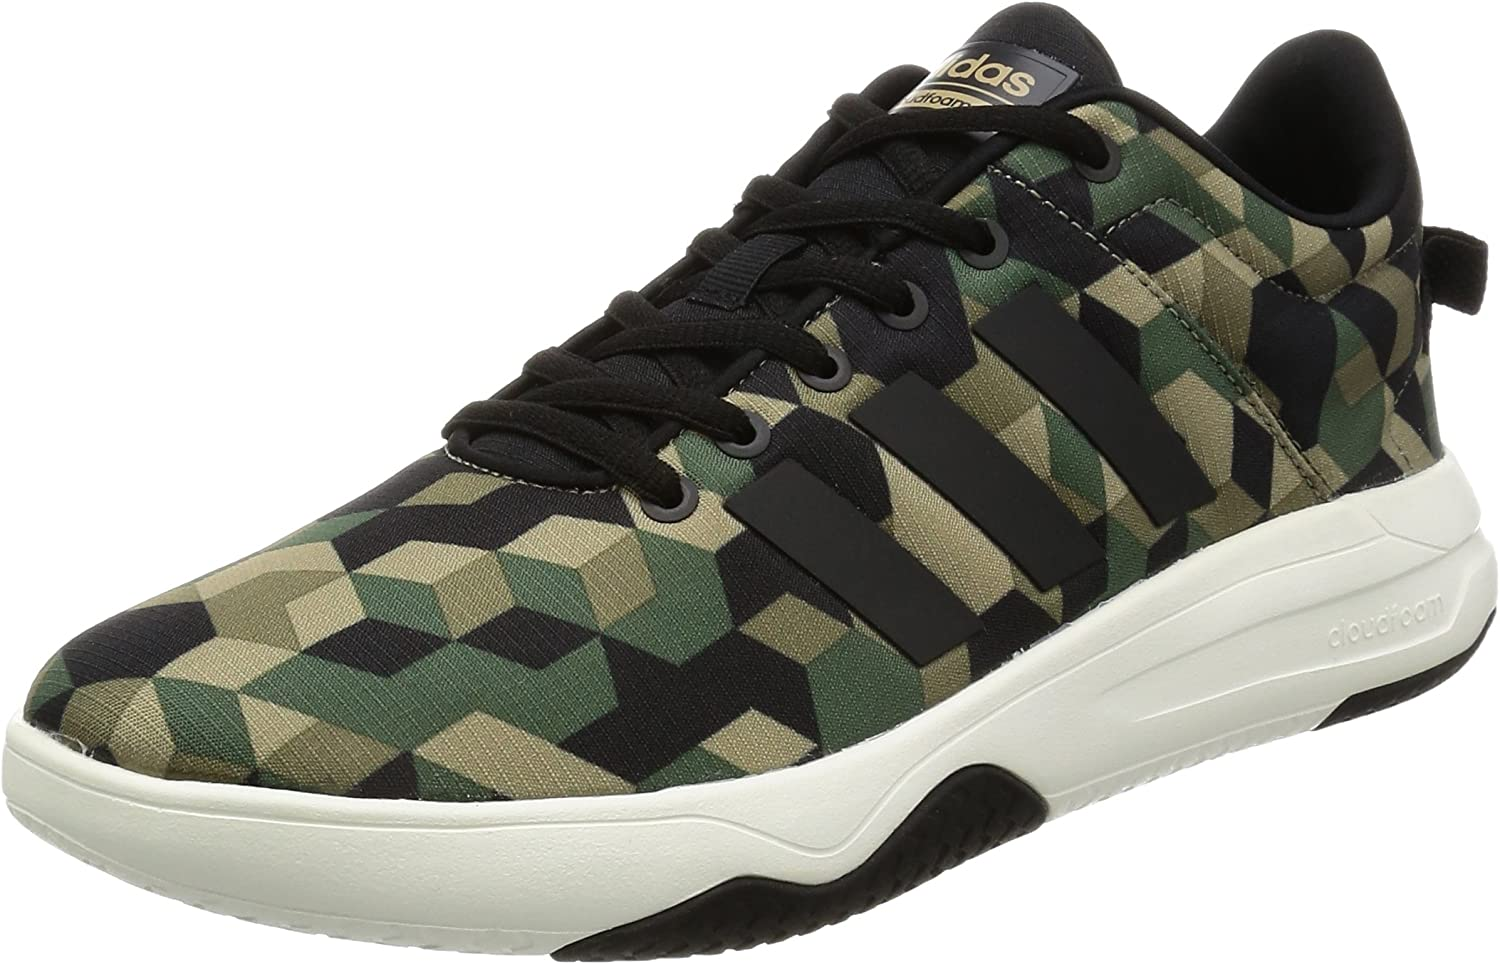 Shopping - adidas cloudfoam camo - OFF 69% - Shipping is free on ...